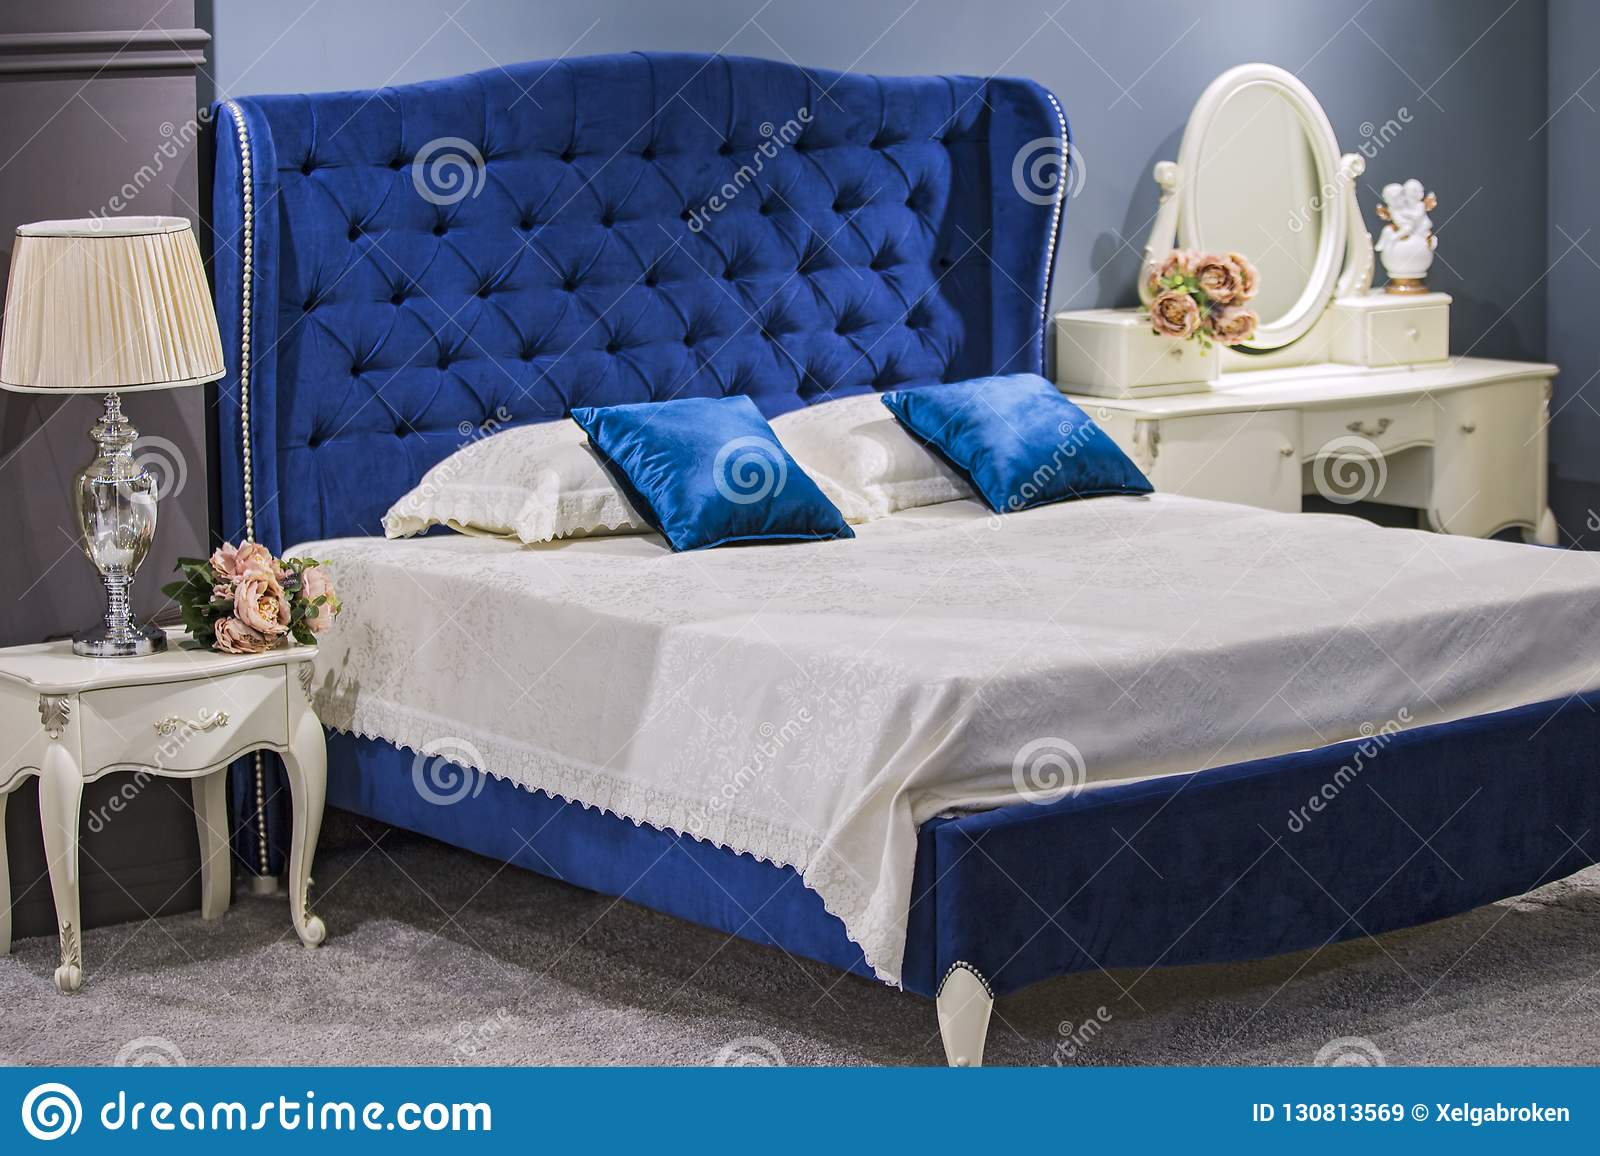 Luxury Royal Bedroom In Antique Style With Blue Velvet Bed And White Nightstand Stock Image Image Of Architecture Design 130813569